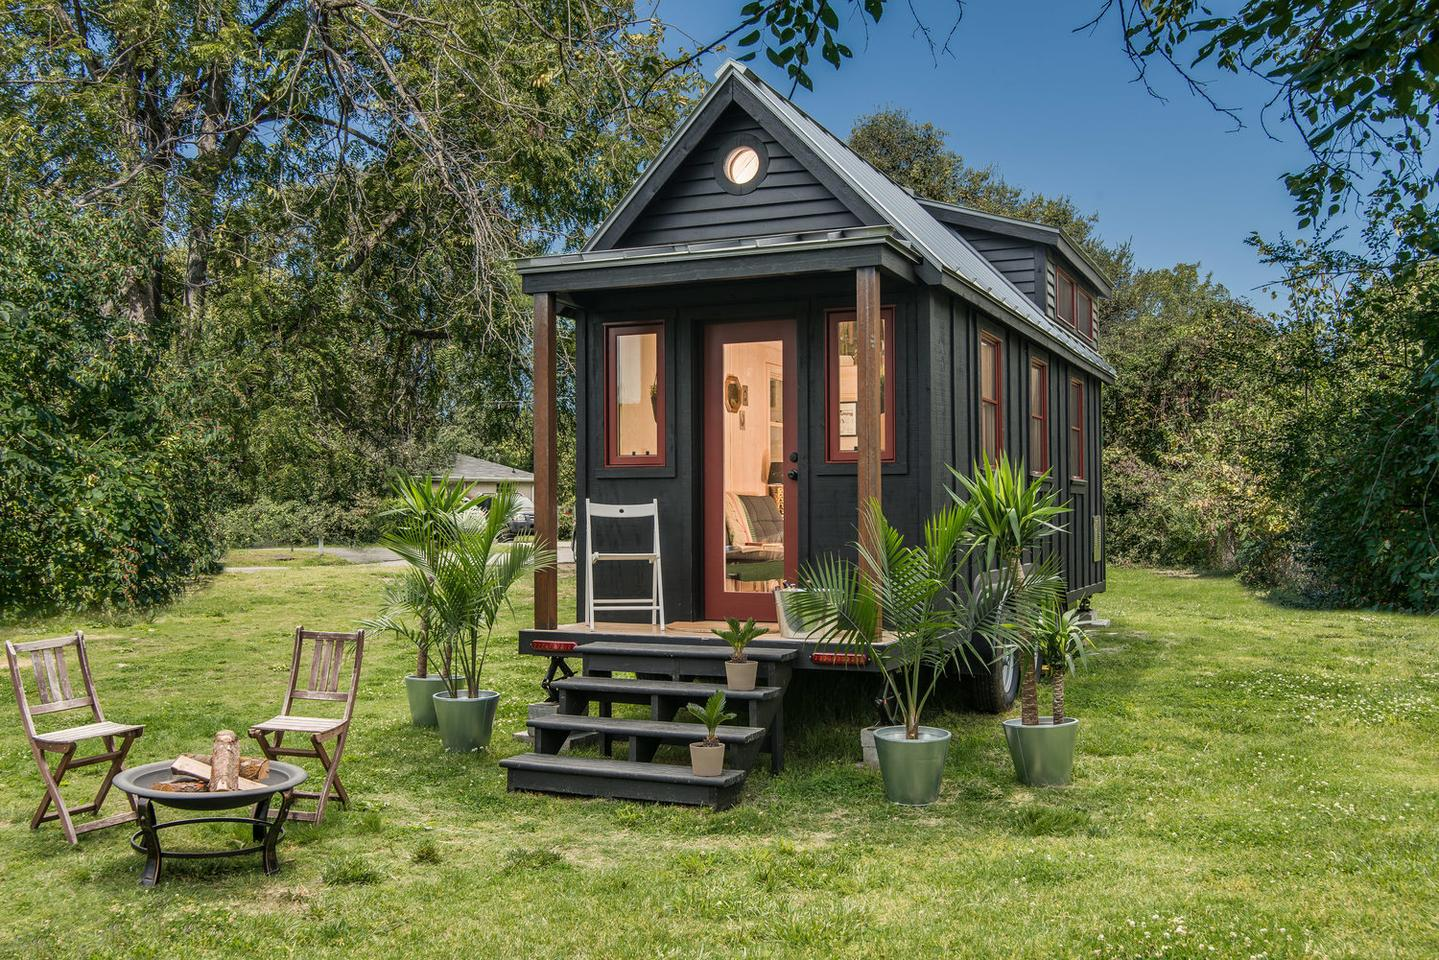 Nashville, Tennessee-based firm New Frontier Tiny Homes looked to Scandinavia for inspiration when designing its recently-completed Riverside tiny house